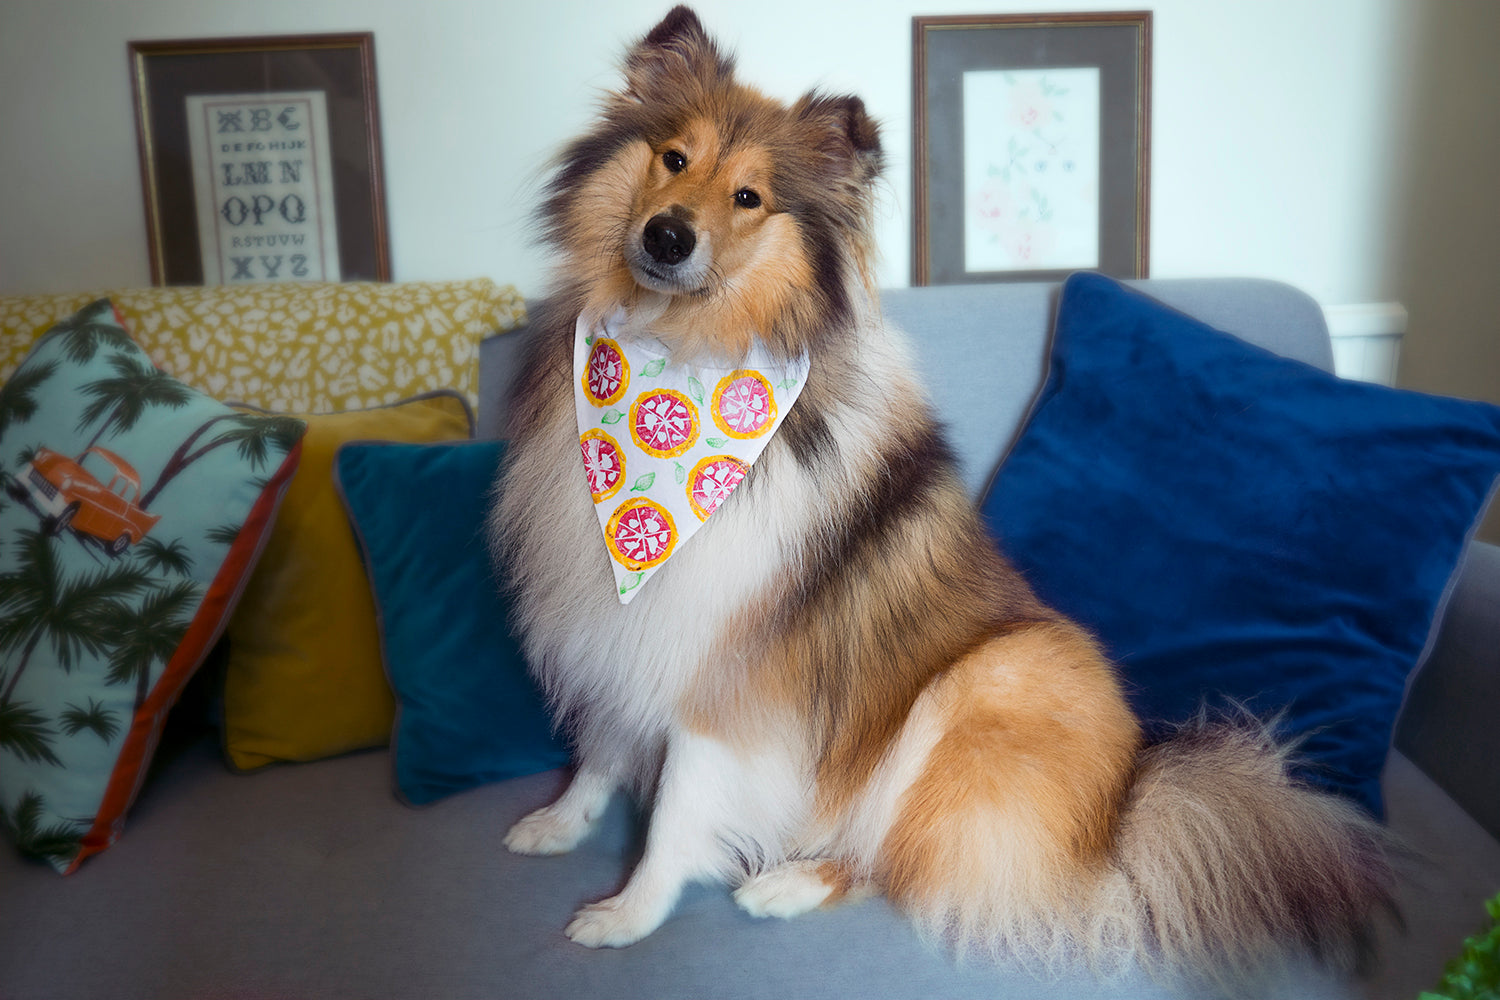 collie dog on sofa with pizza outfit bandana